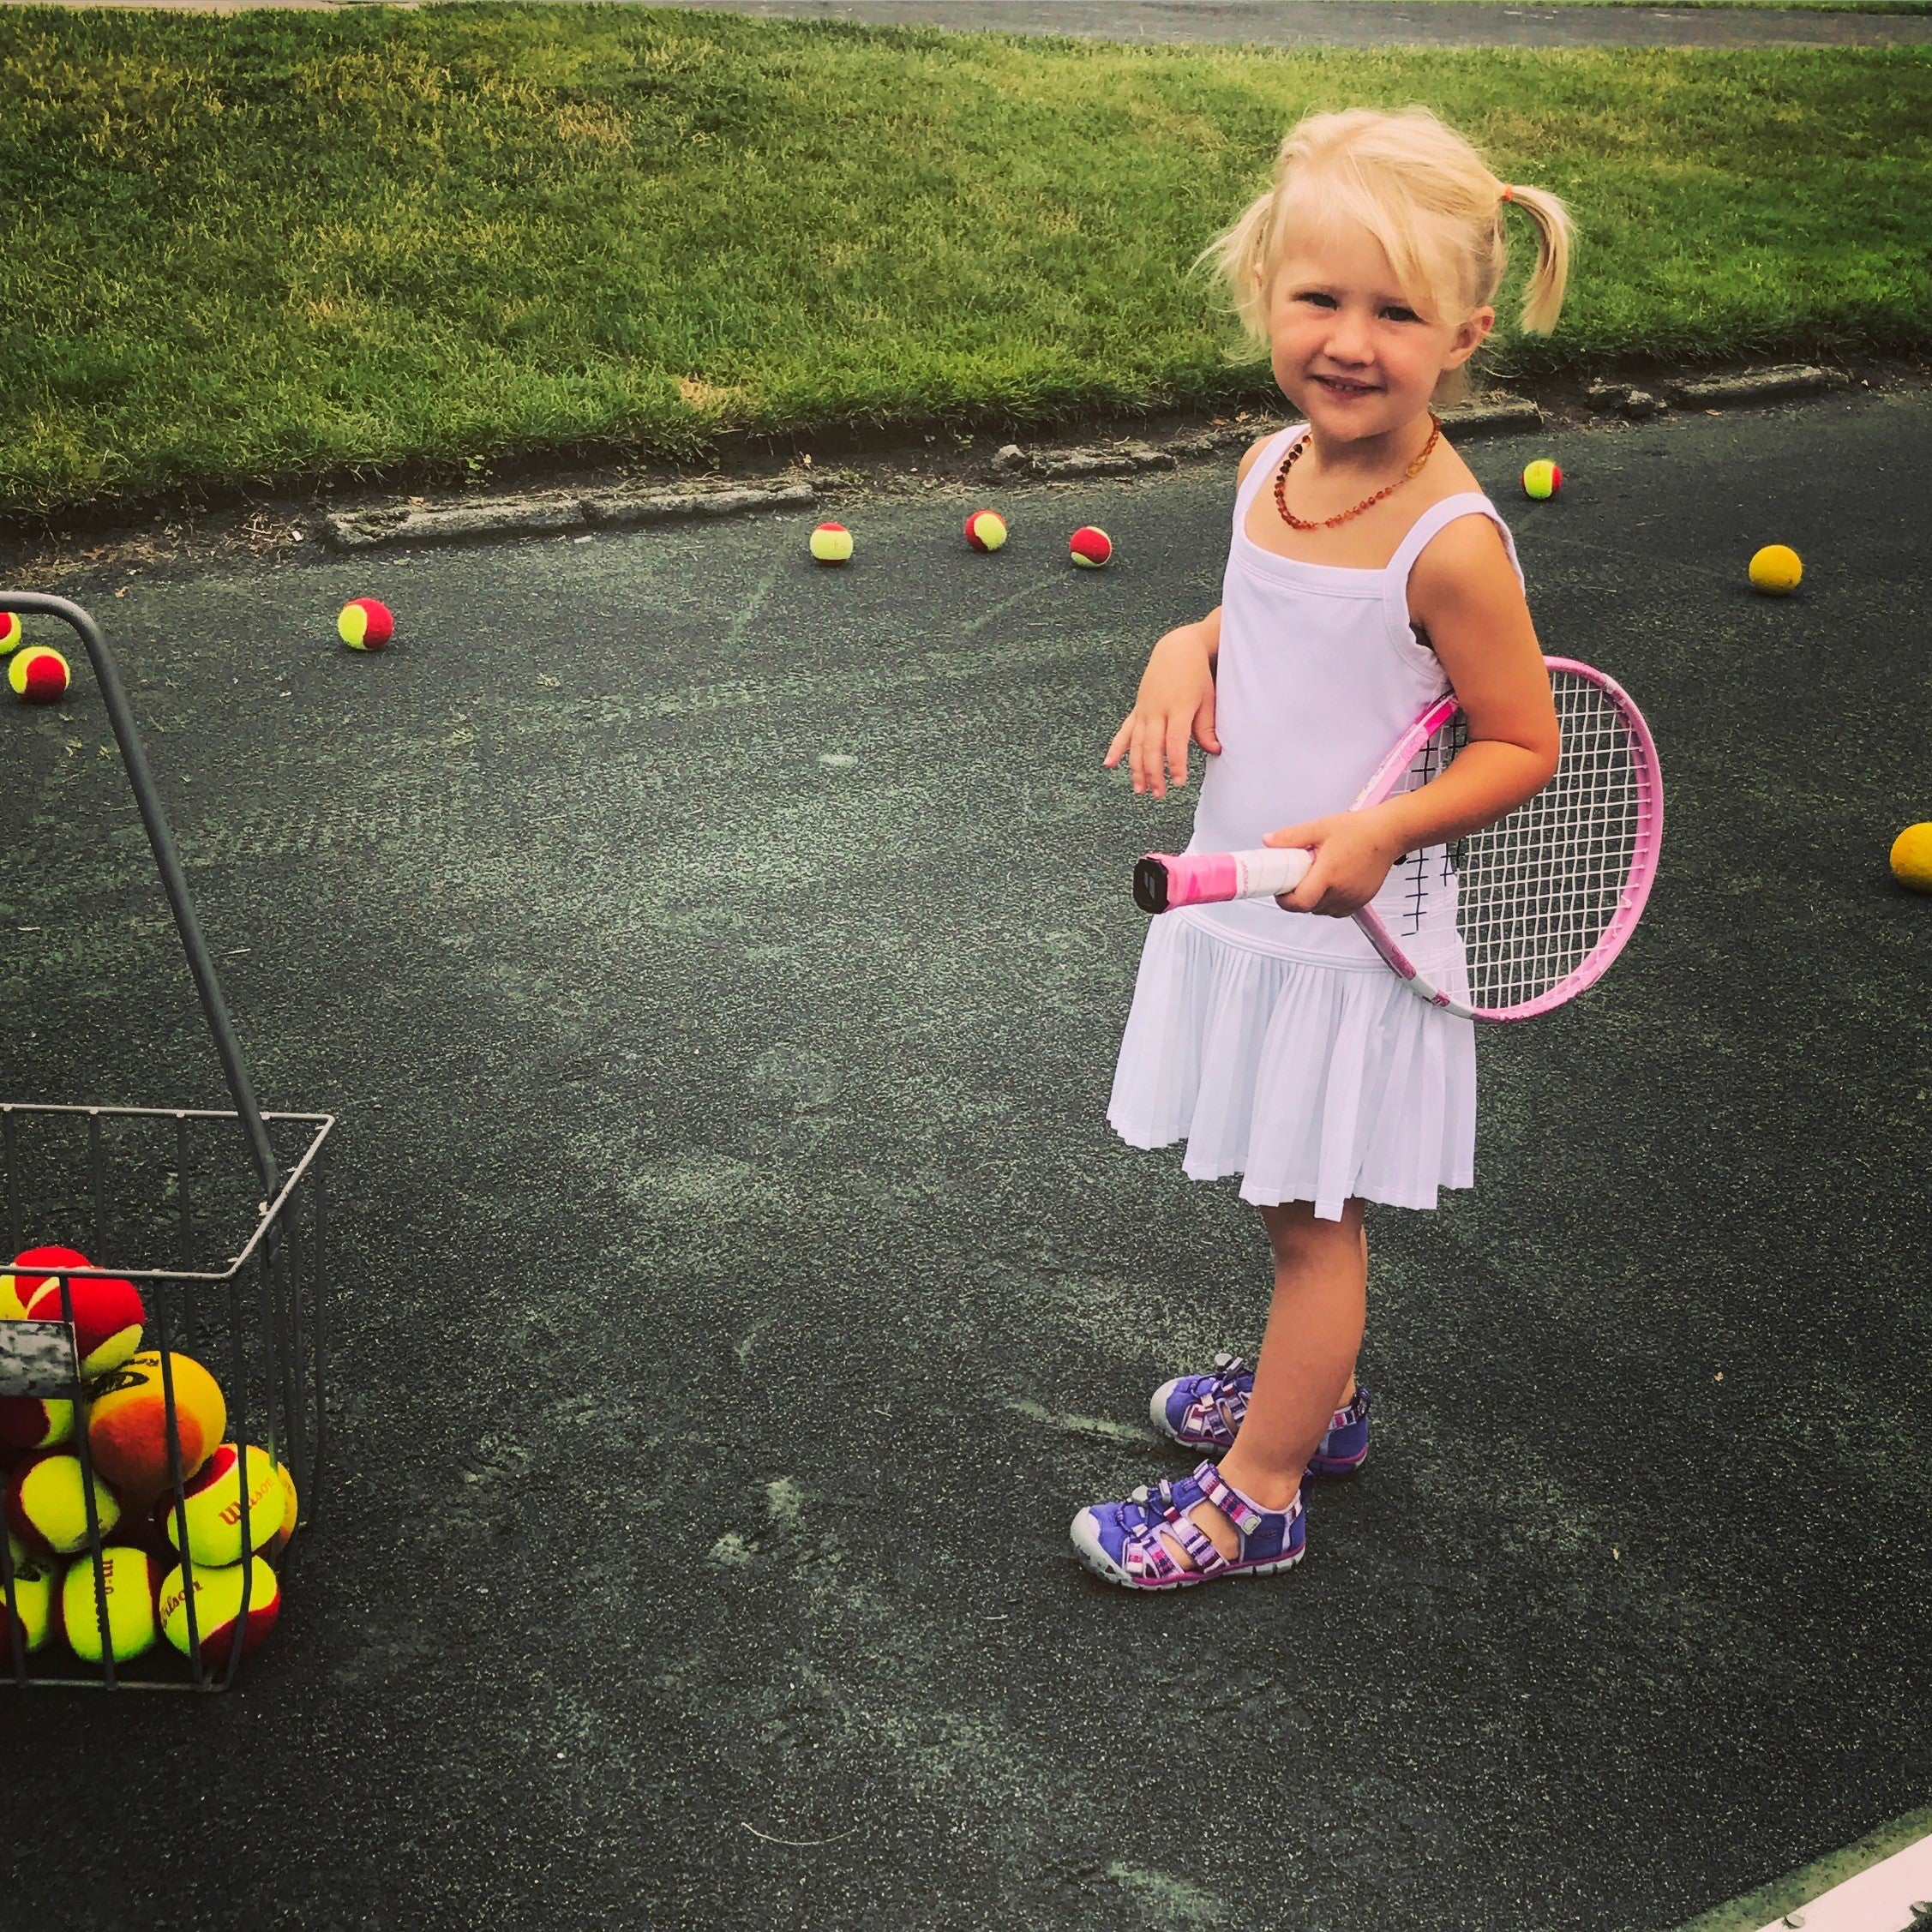 Mia with Tennis Racket and Tennis Balls | RISE Nitro Brewing Co.